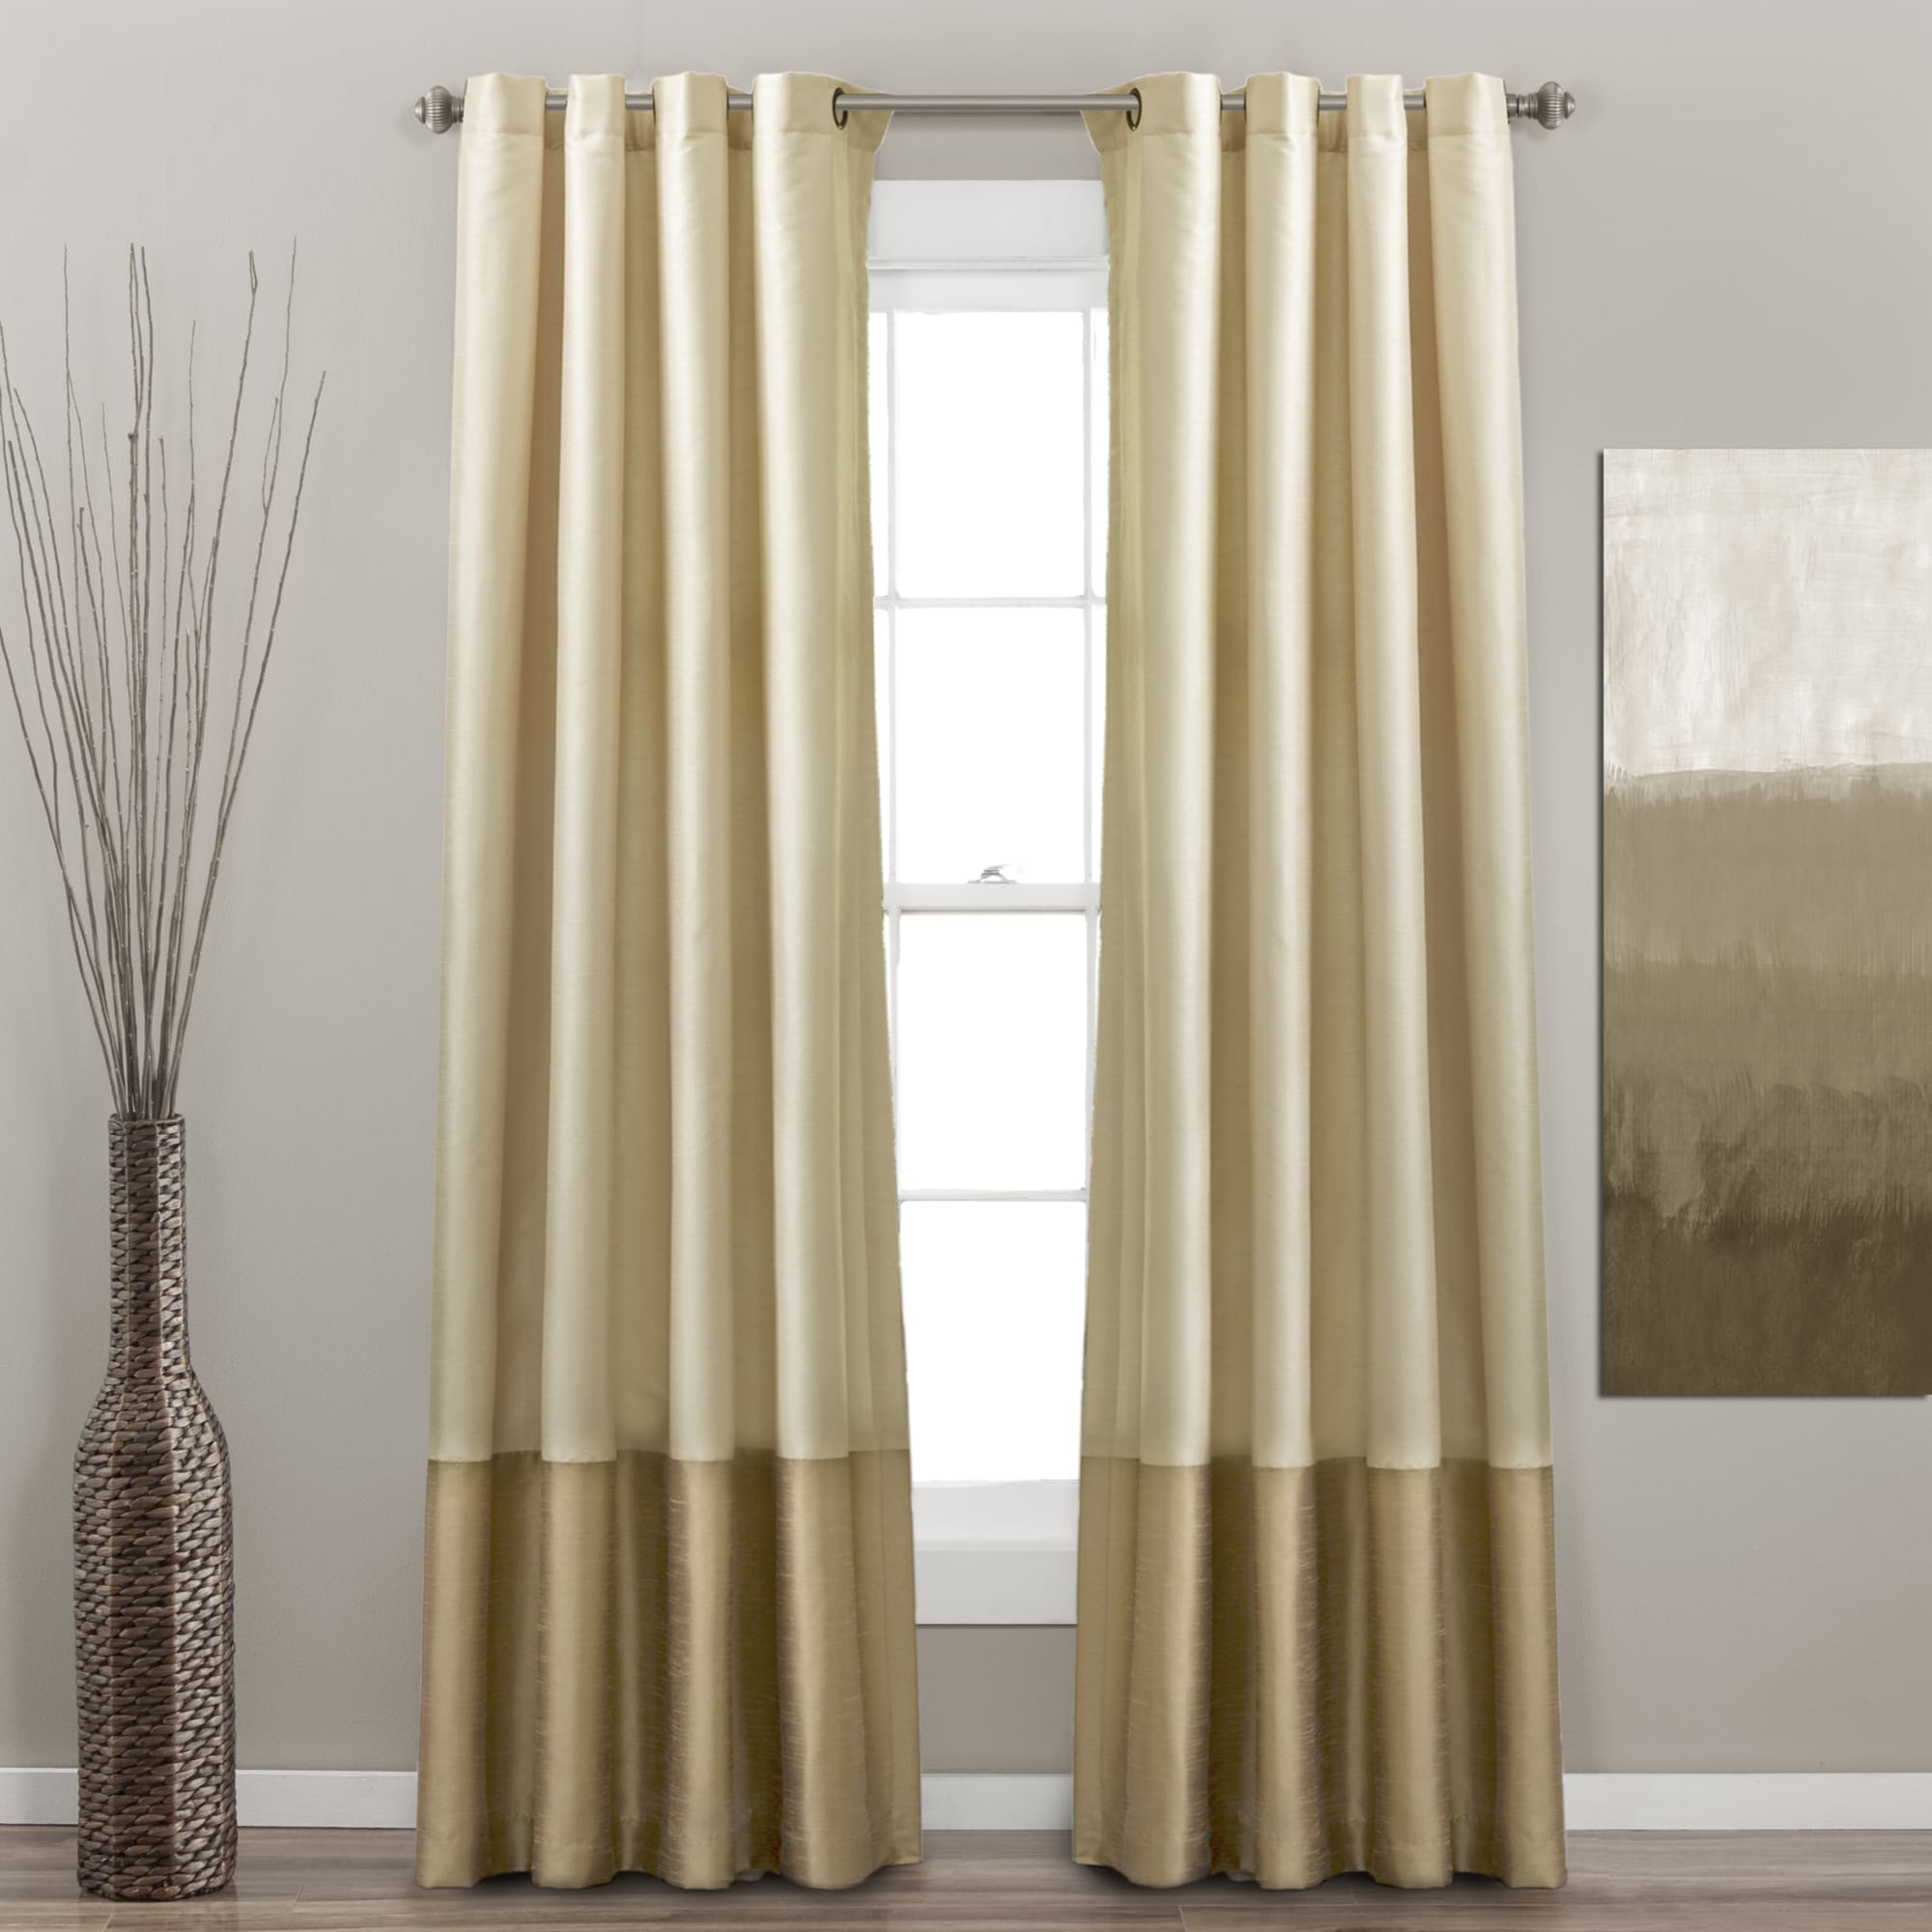 drapes drapesteal panel smokyteal photos milan curtain com damask curtains overstock inch blue concept surprising teal